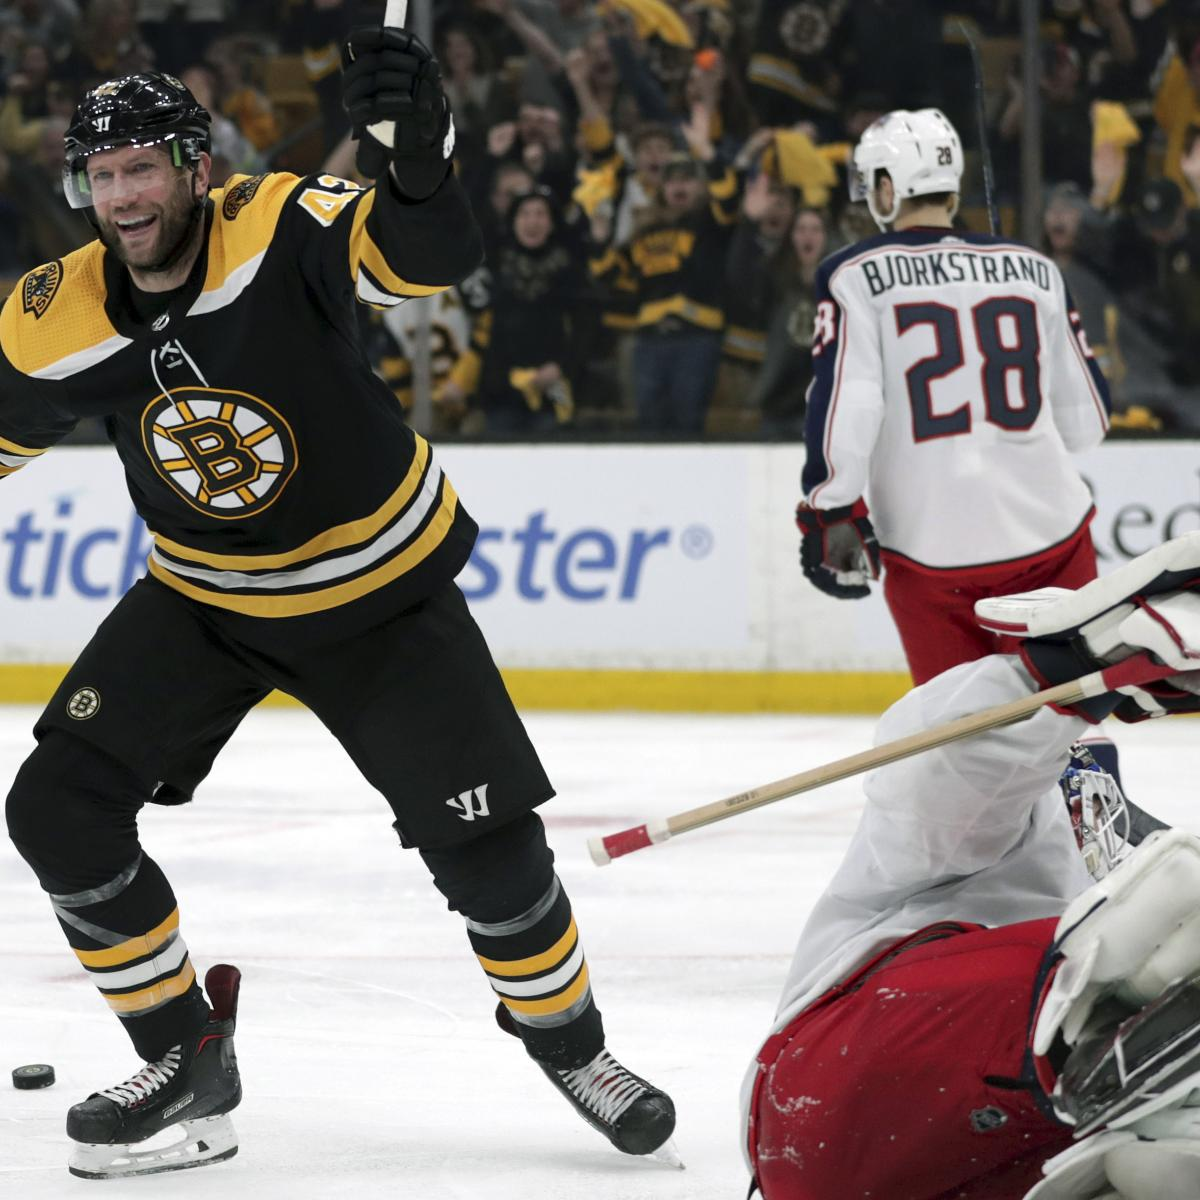 David Pastrnak's Late Goal Gives Bruins 4-3 Game 5 Win